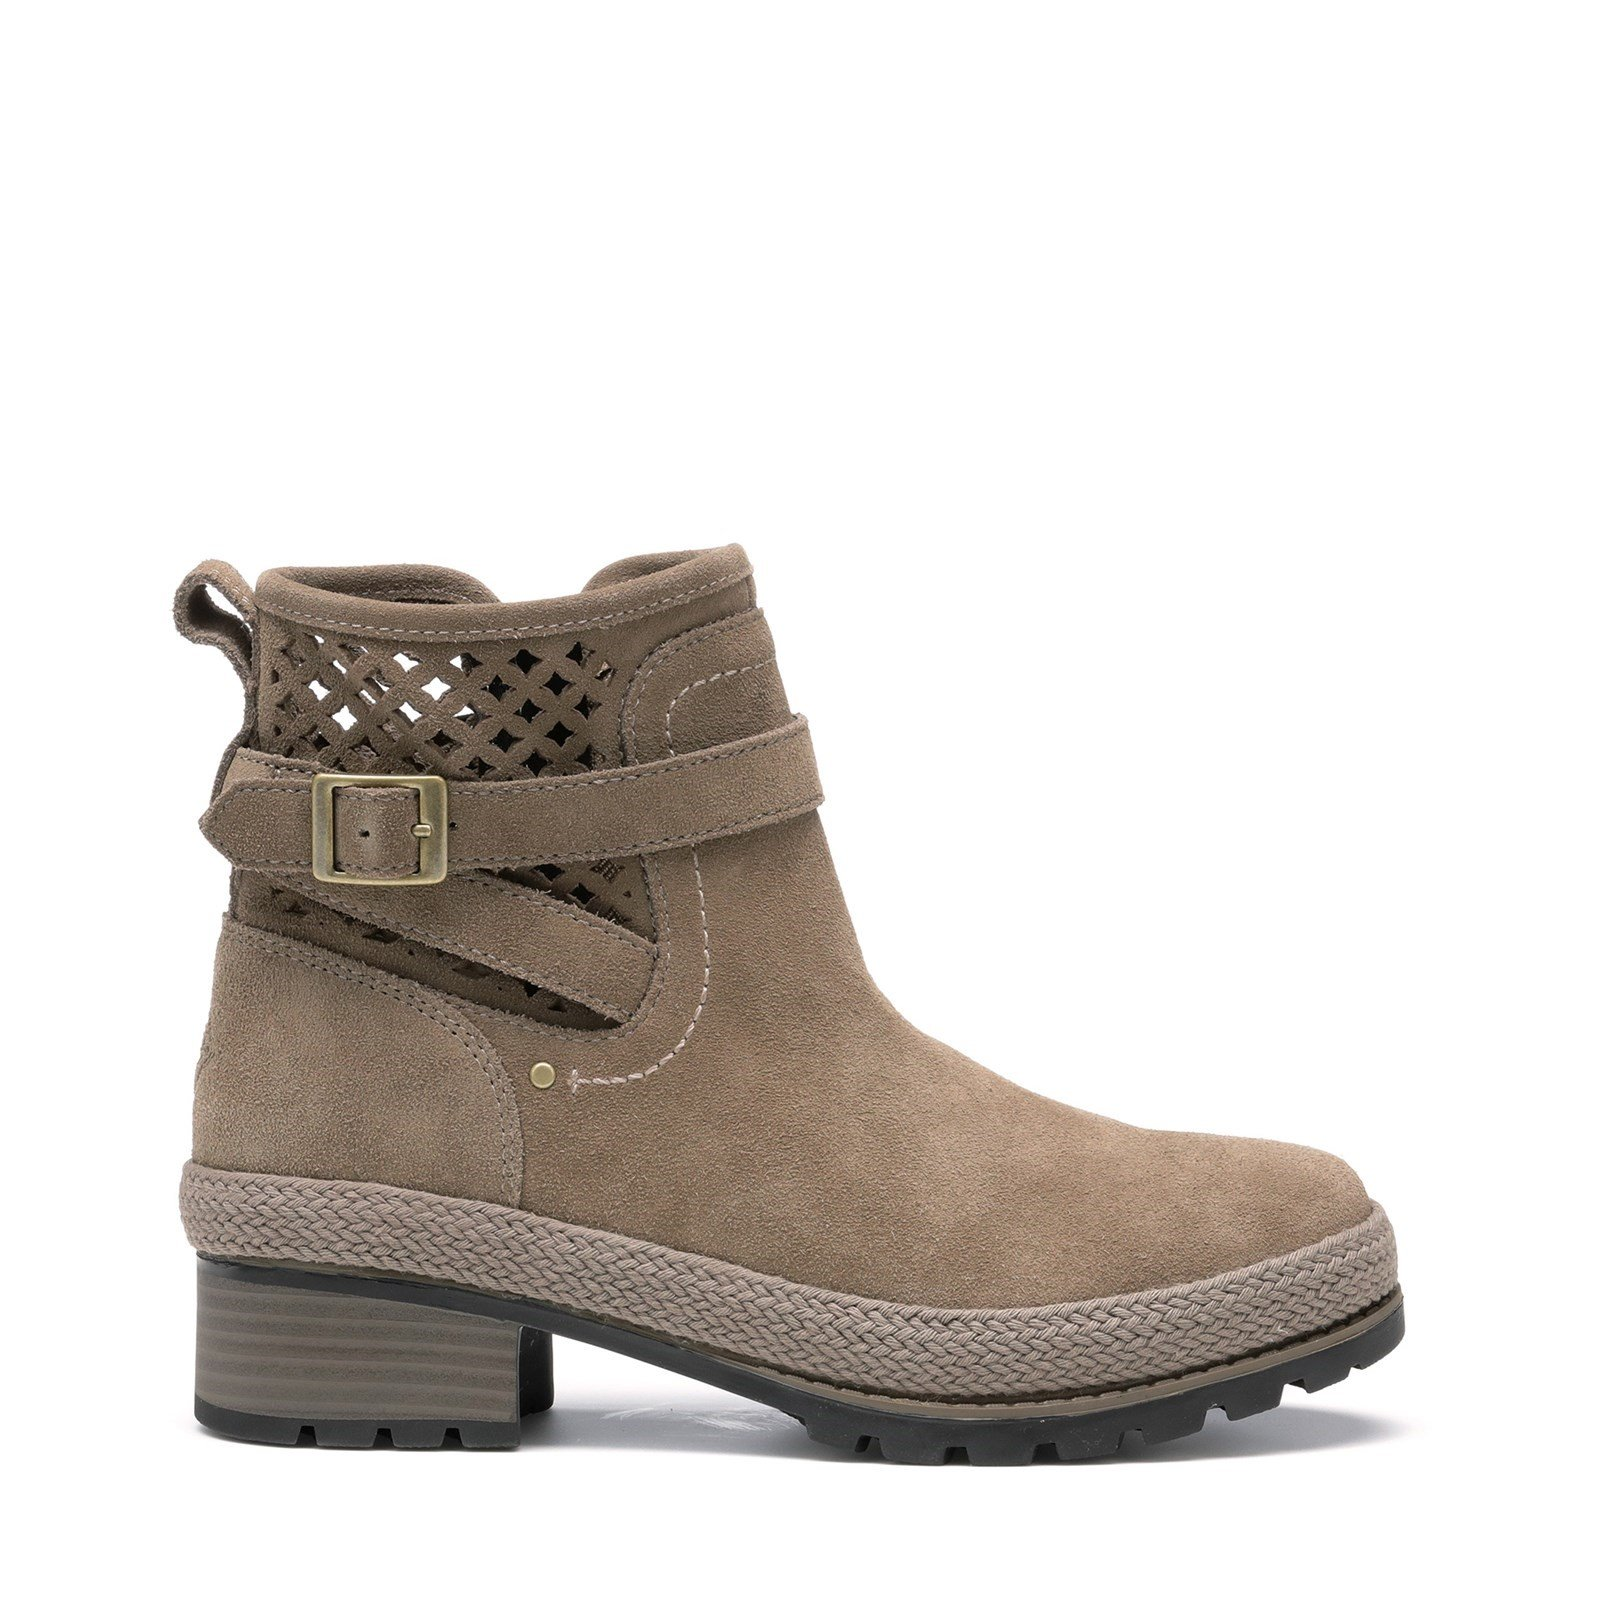 Muck Boots Women's Liberty Perforated Leather Boots Various Colours 31814 - Grey 9